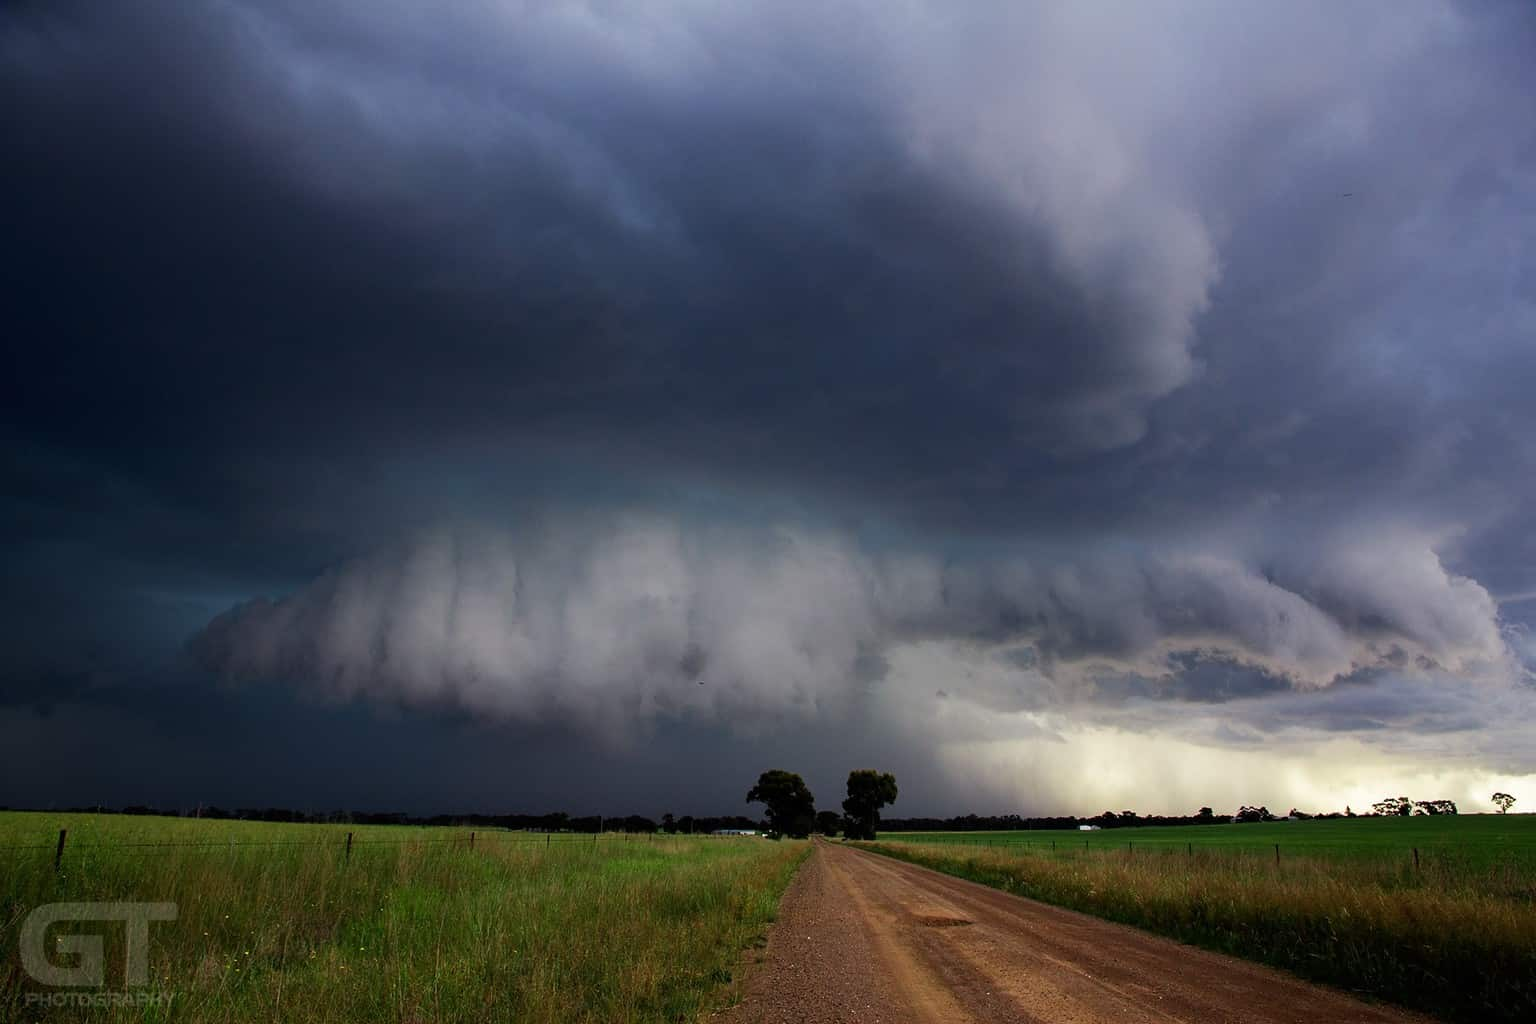 Over four years later and still one of my favourite storms. This was shot back on 22nd October, 2011 in Leichardt, Victoria, Australia. A nasty little isolated cell that was loaded with hail.